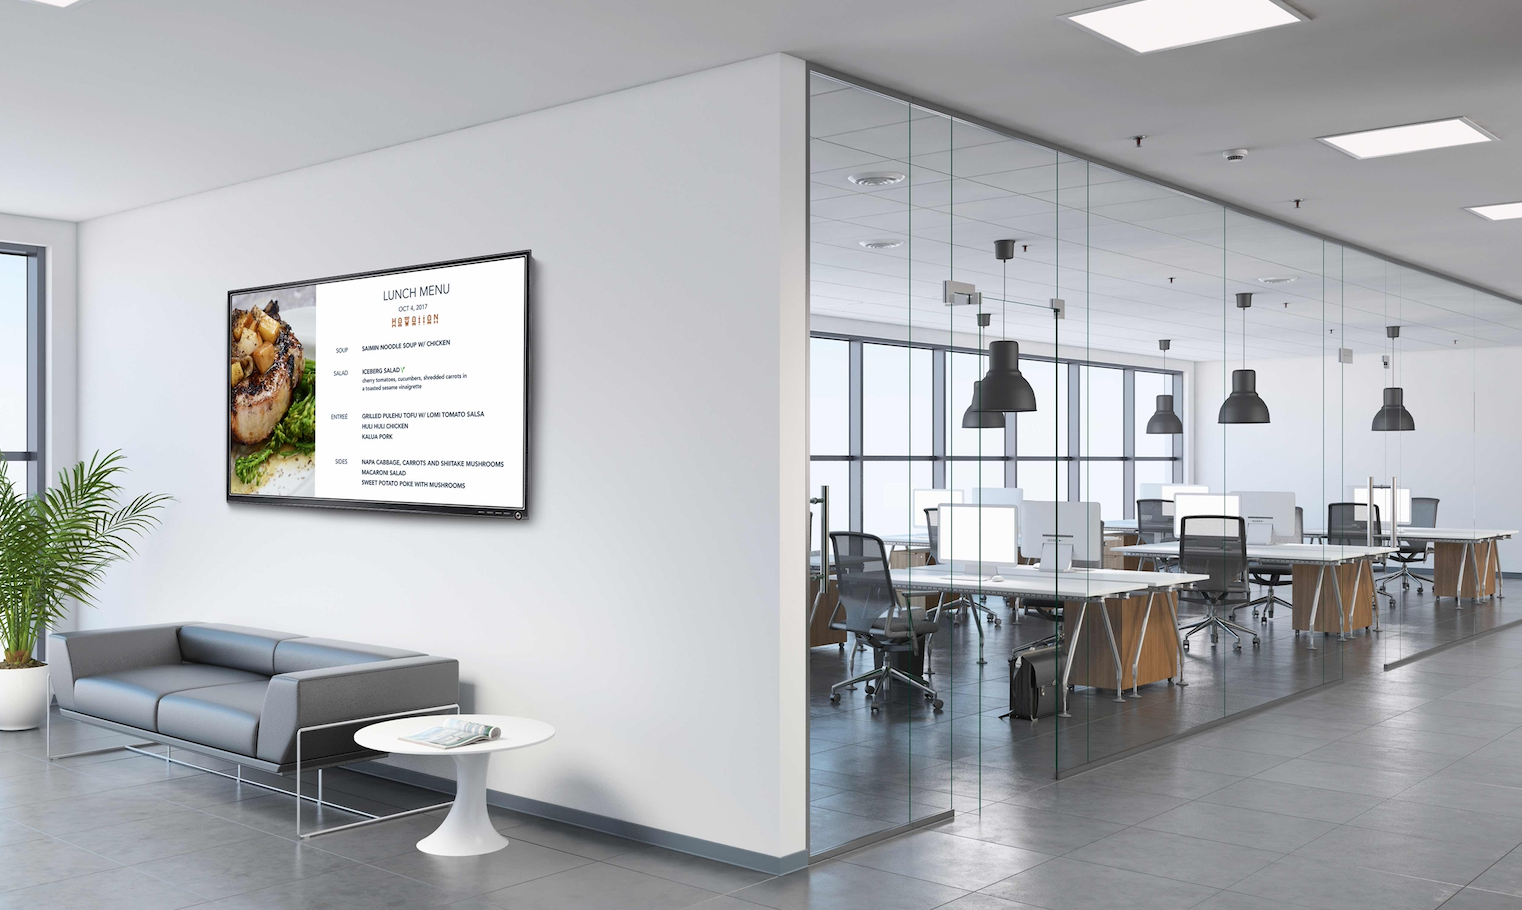 new zoom rooms features digital signage more now available rh blog zoom us zoom interior design shark tank Kitchen Interior Design